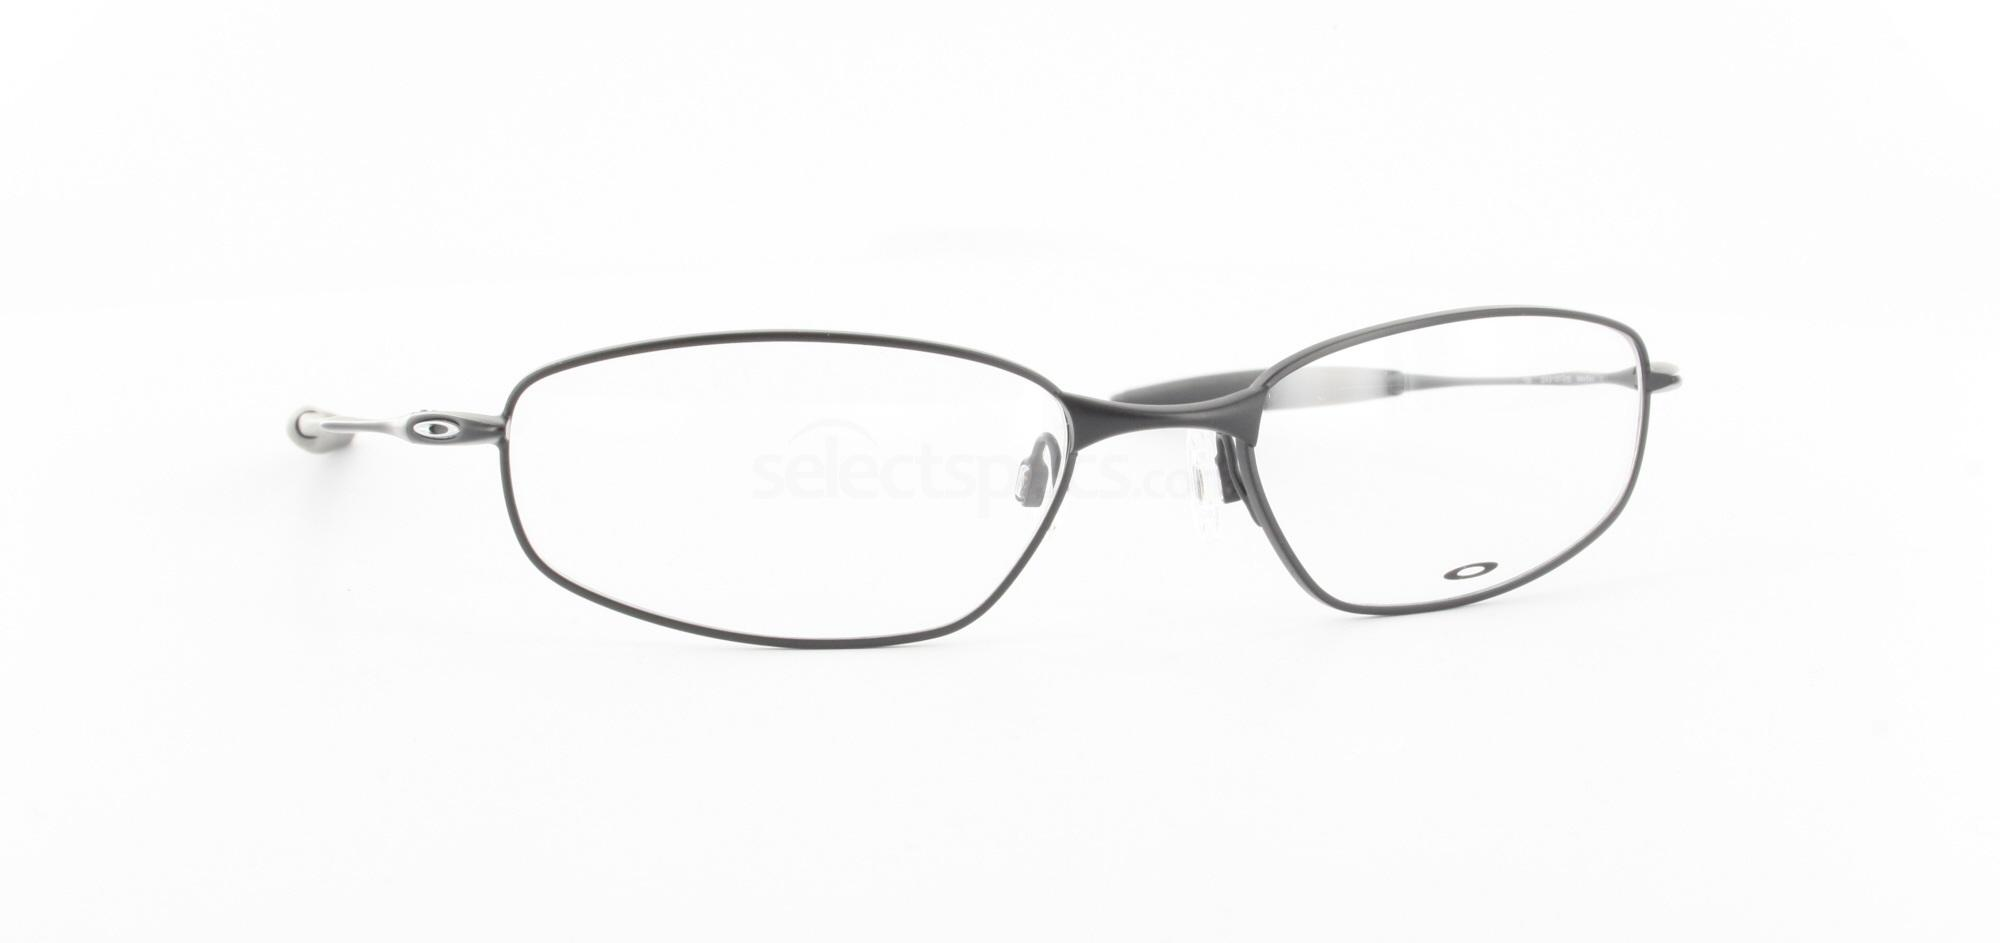 d37bb8587f Oakley Prescription Glasses Ox3107 Whisker 6b « Heritage Malta